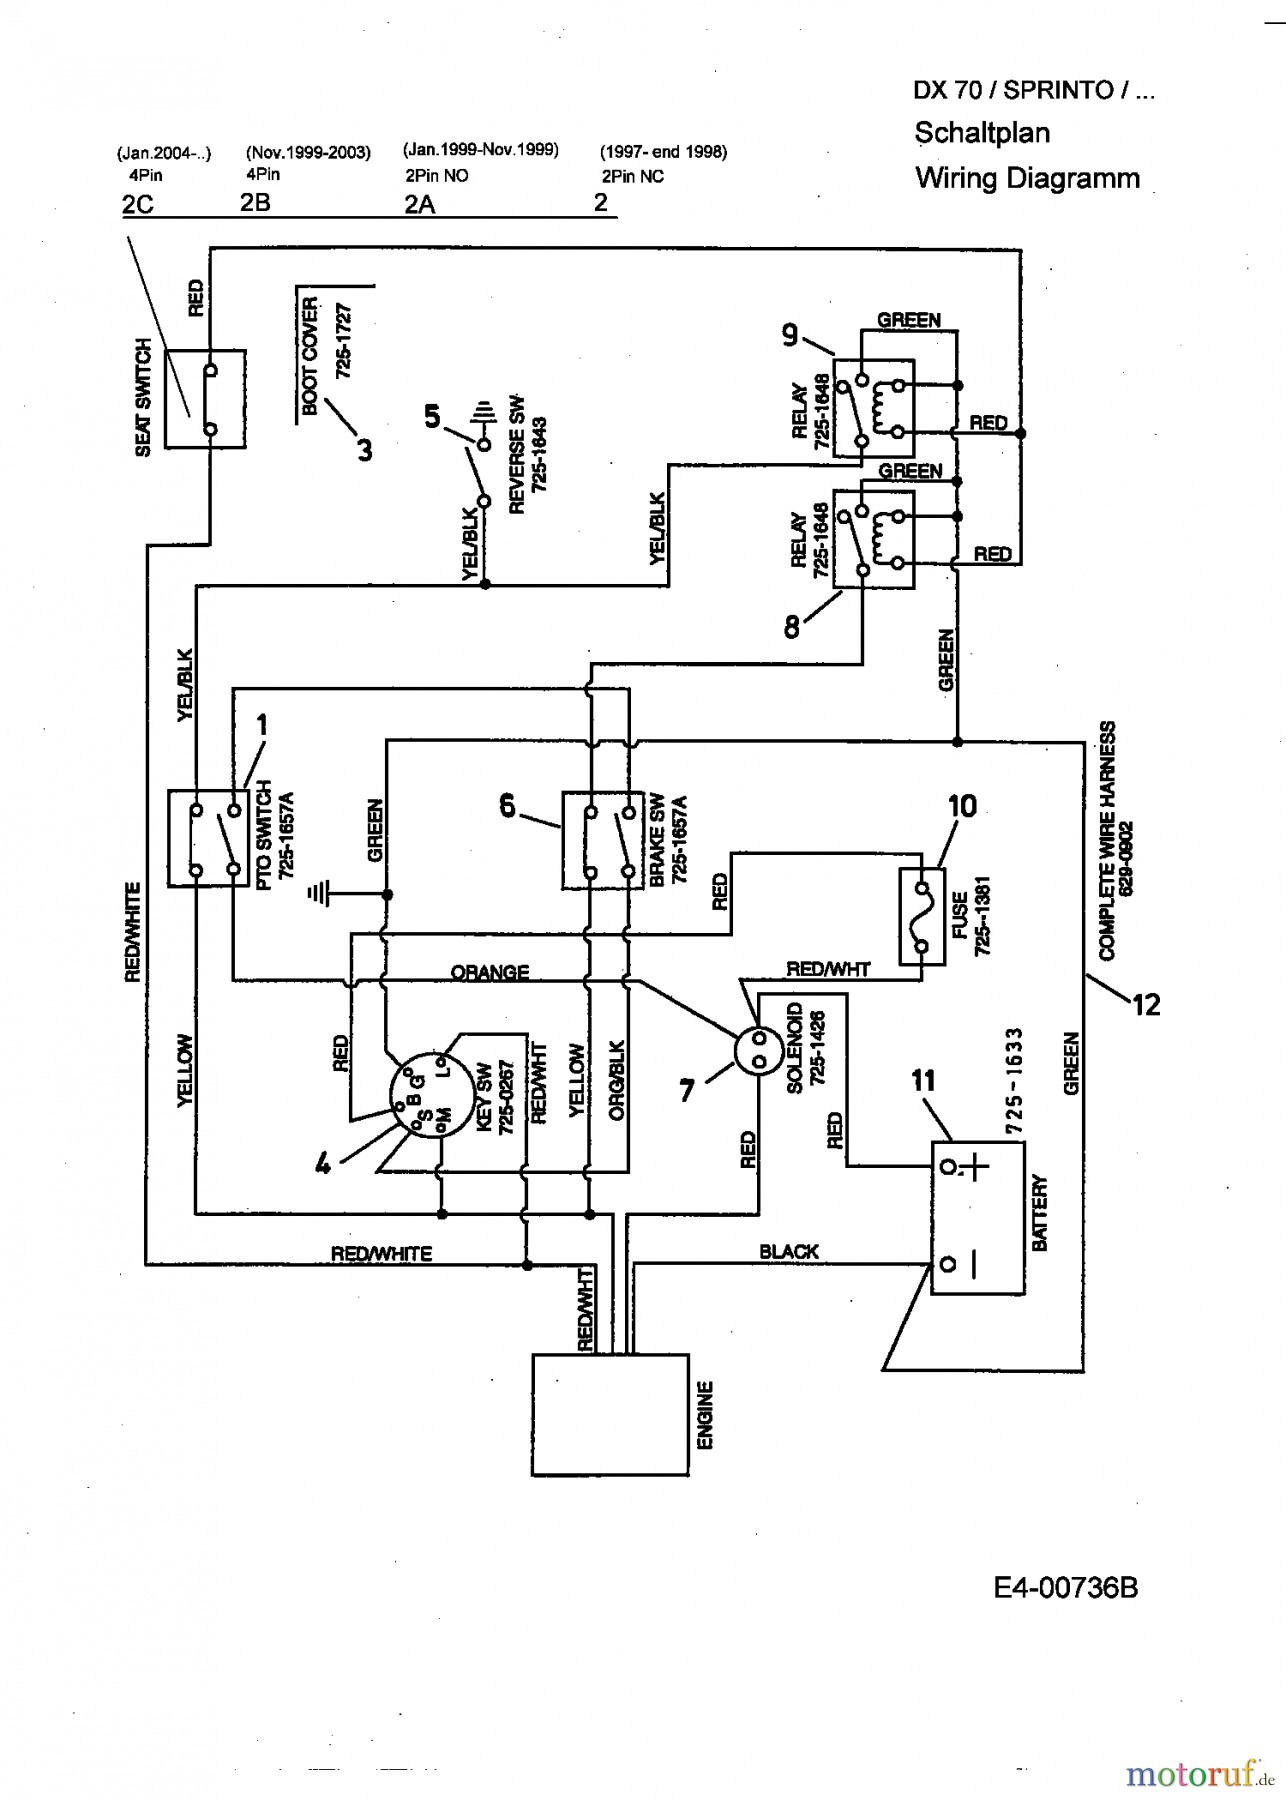 Mtd 13Cd609G063 Wiring Diagram | Wiring Diagram - Mtd Ignition Switch Wiring Diagram